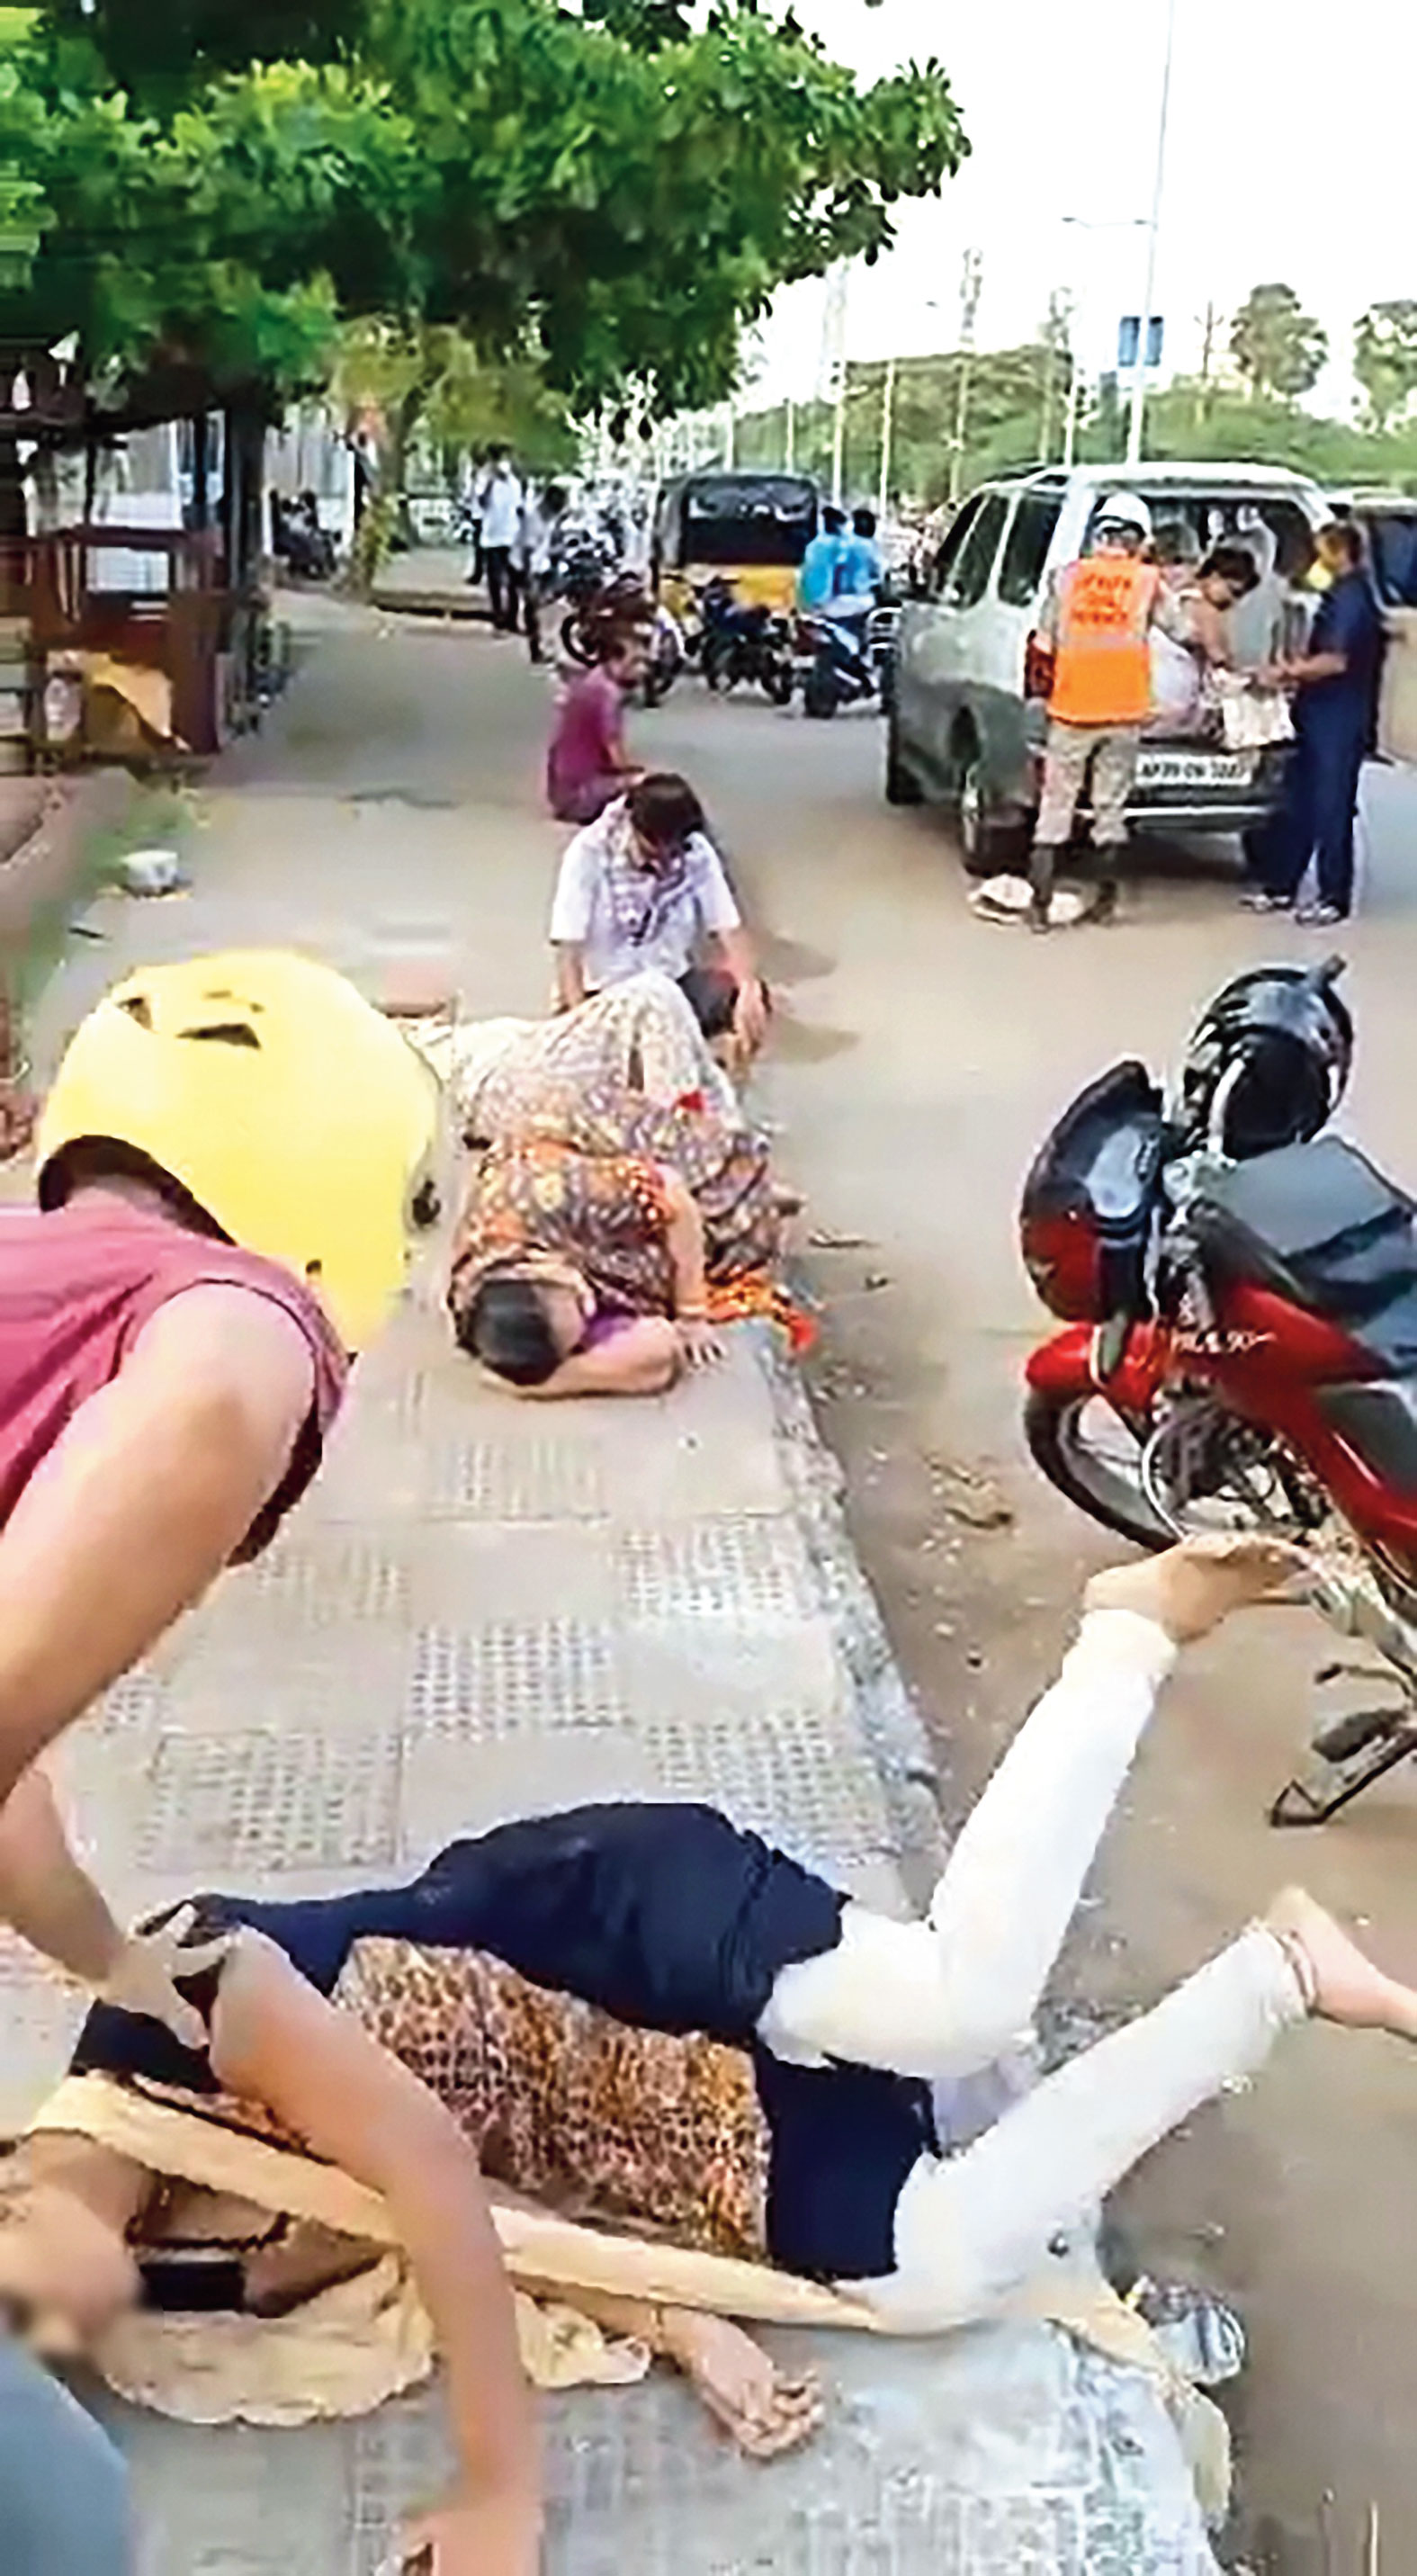 Footage shows a woman falling when she tried to sit after the gas leak at Venkatapuram village, where the LG Polymers plant is located, in Visakhapatnam on Thursday.